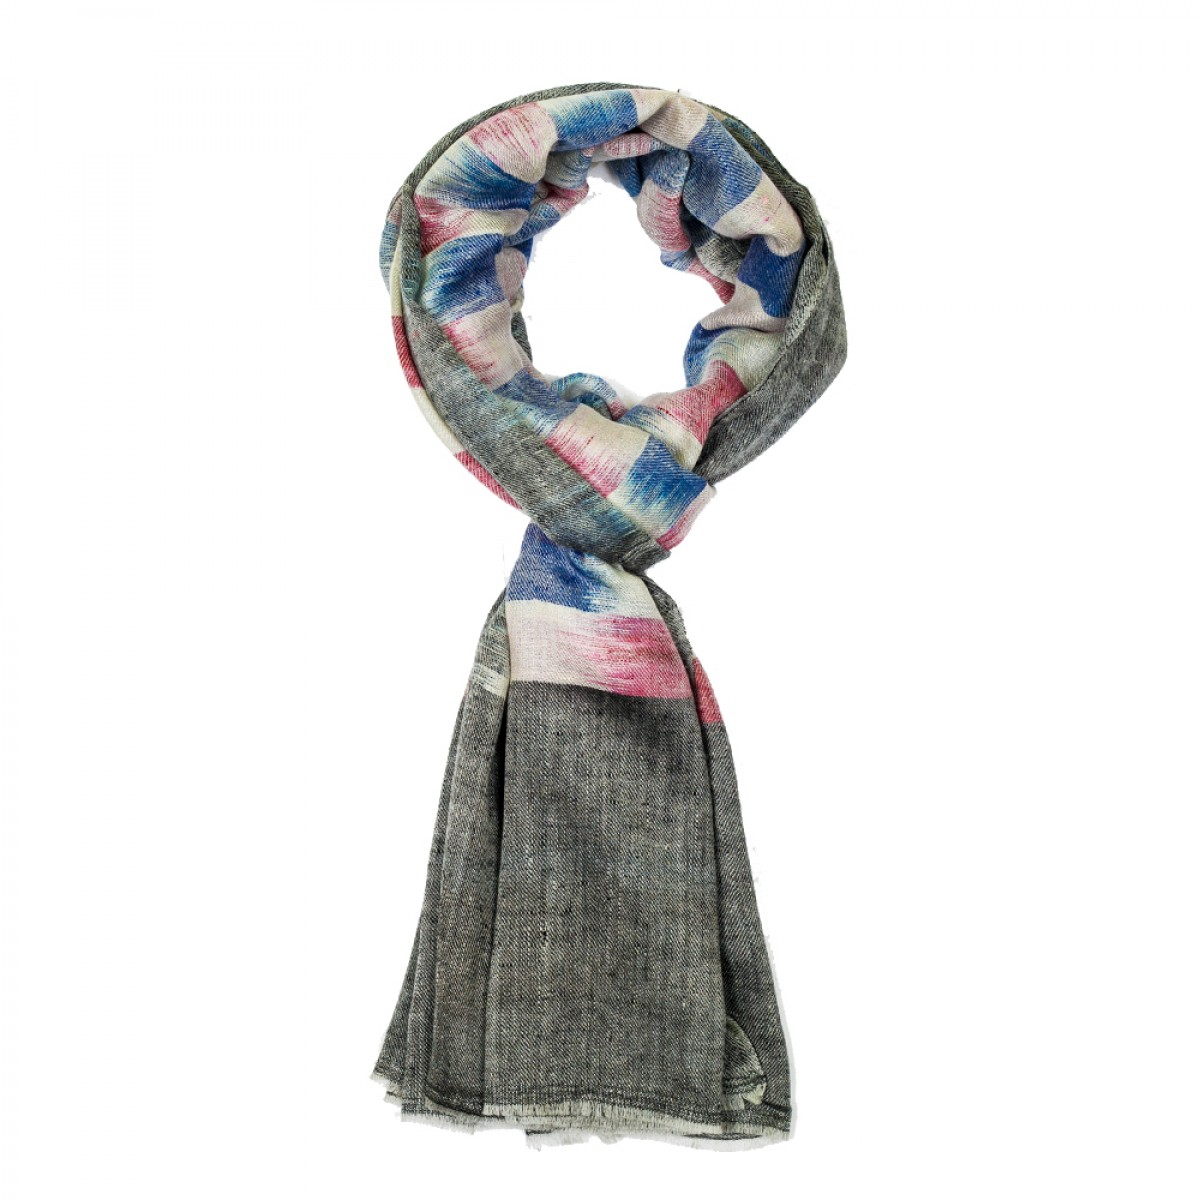 Unisex Ikat Cashmere Pashmina Scarf - Grey and blue